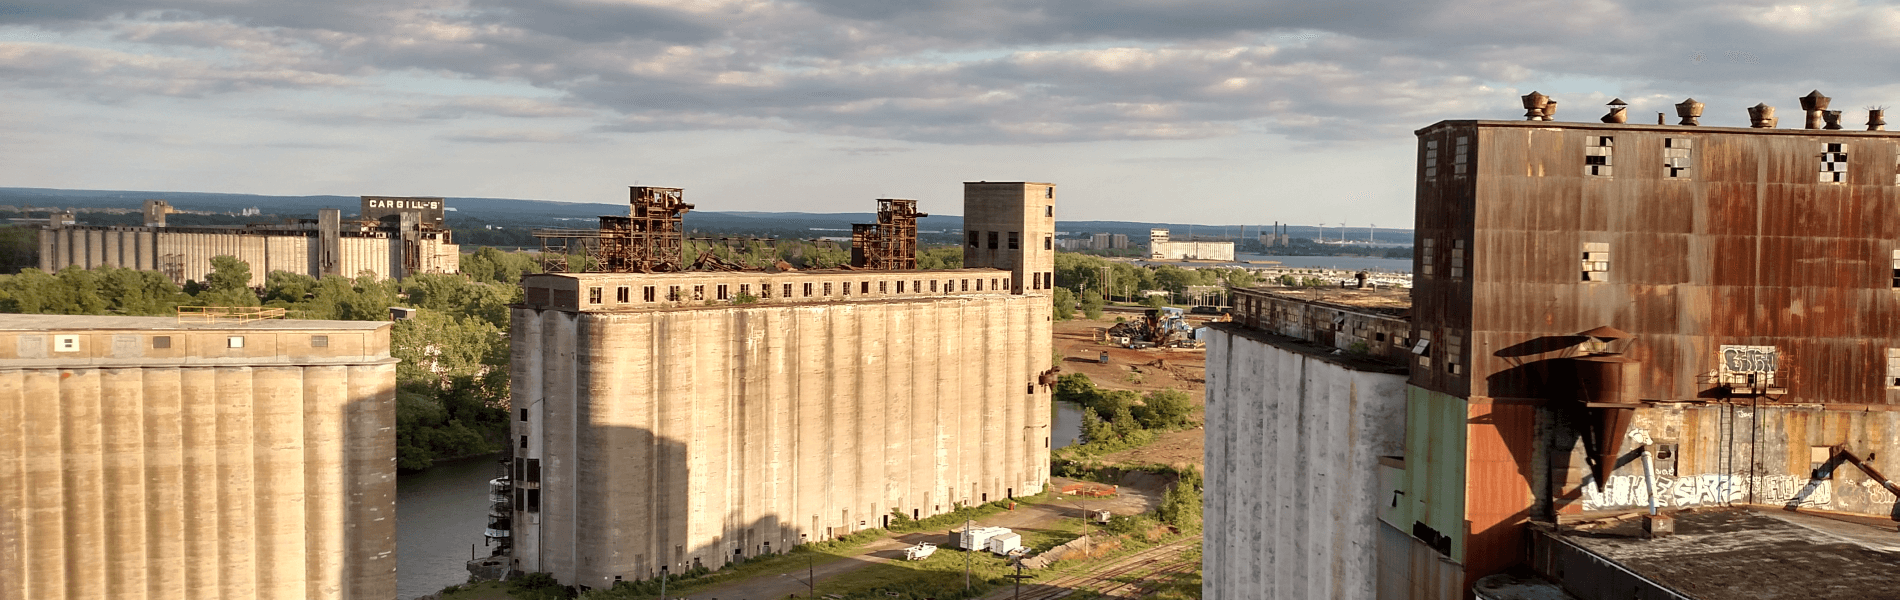 Silo City Vertical Grain Elevator Tours